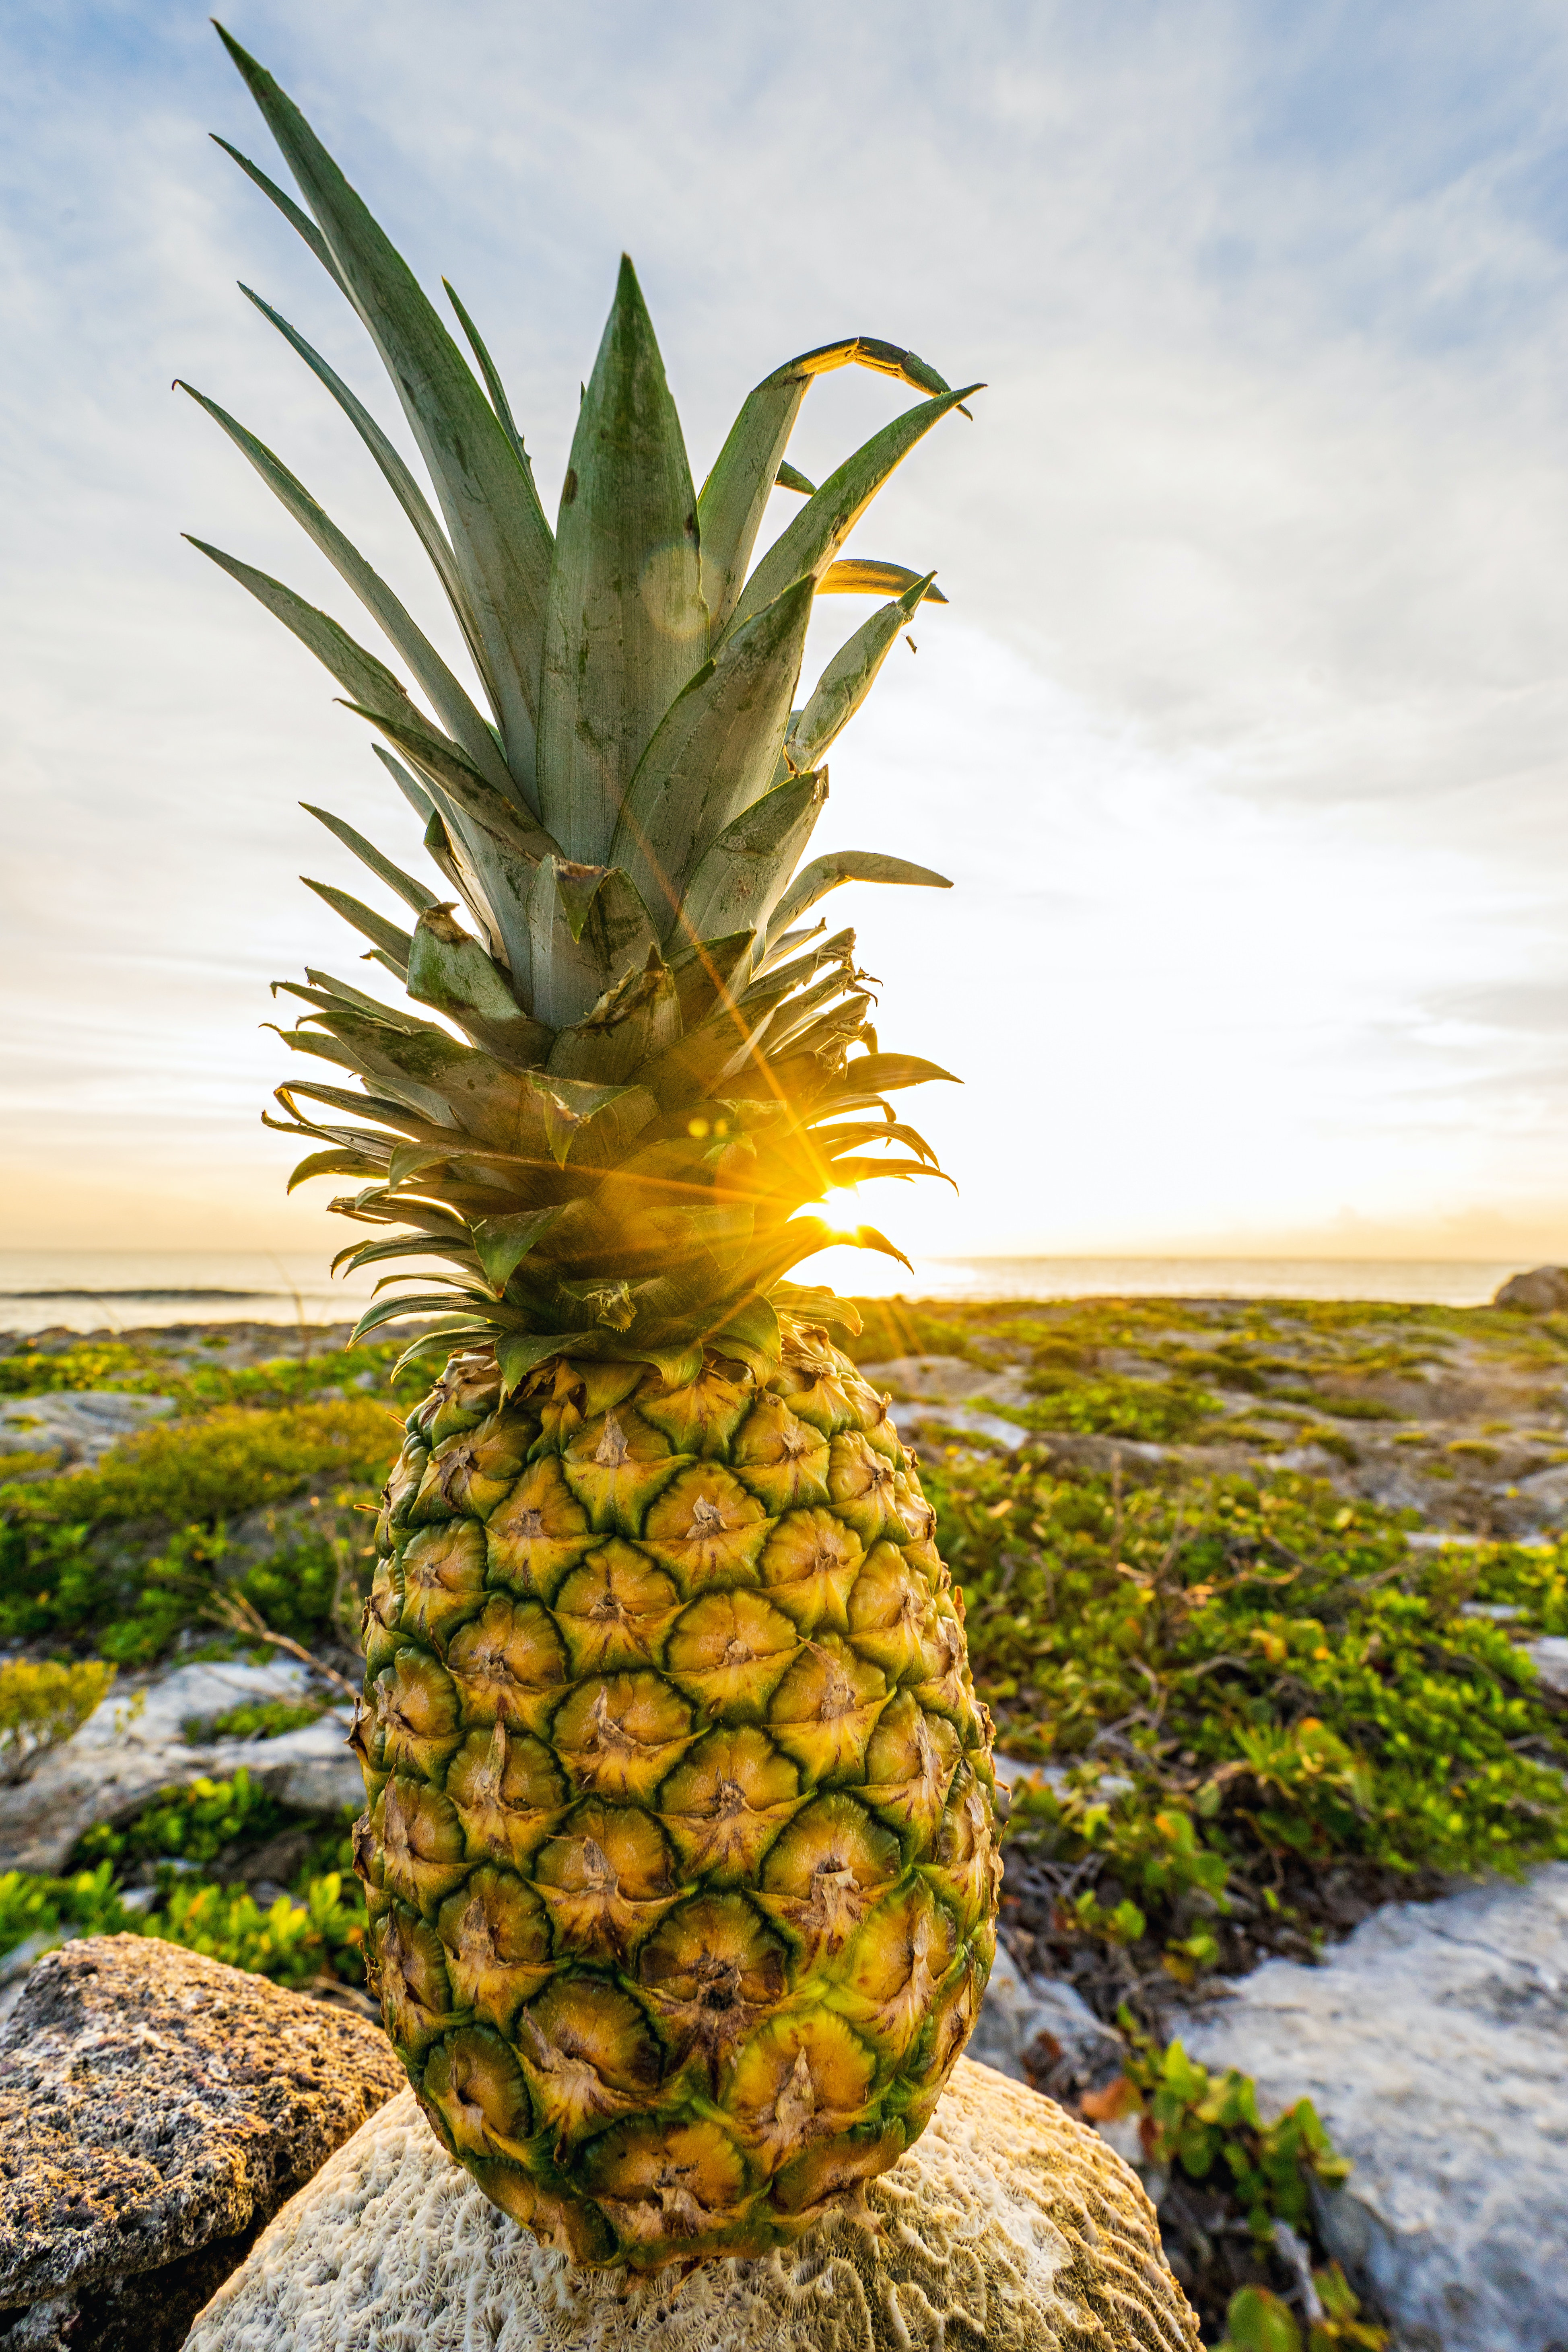 Researchers Develop Light Fastest Drones Using Pineapples Leaves